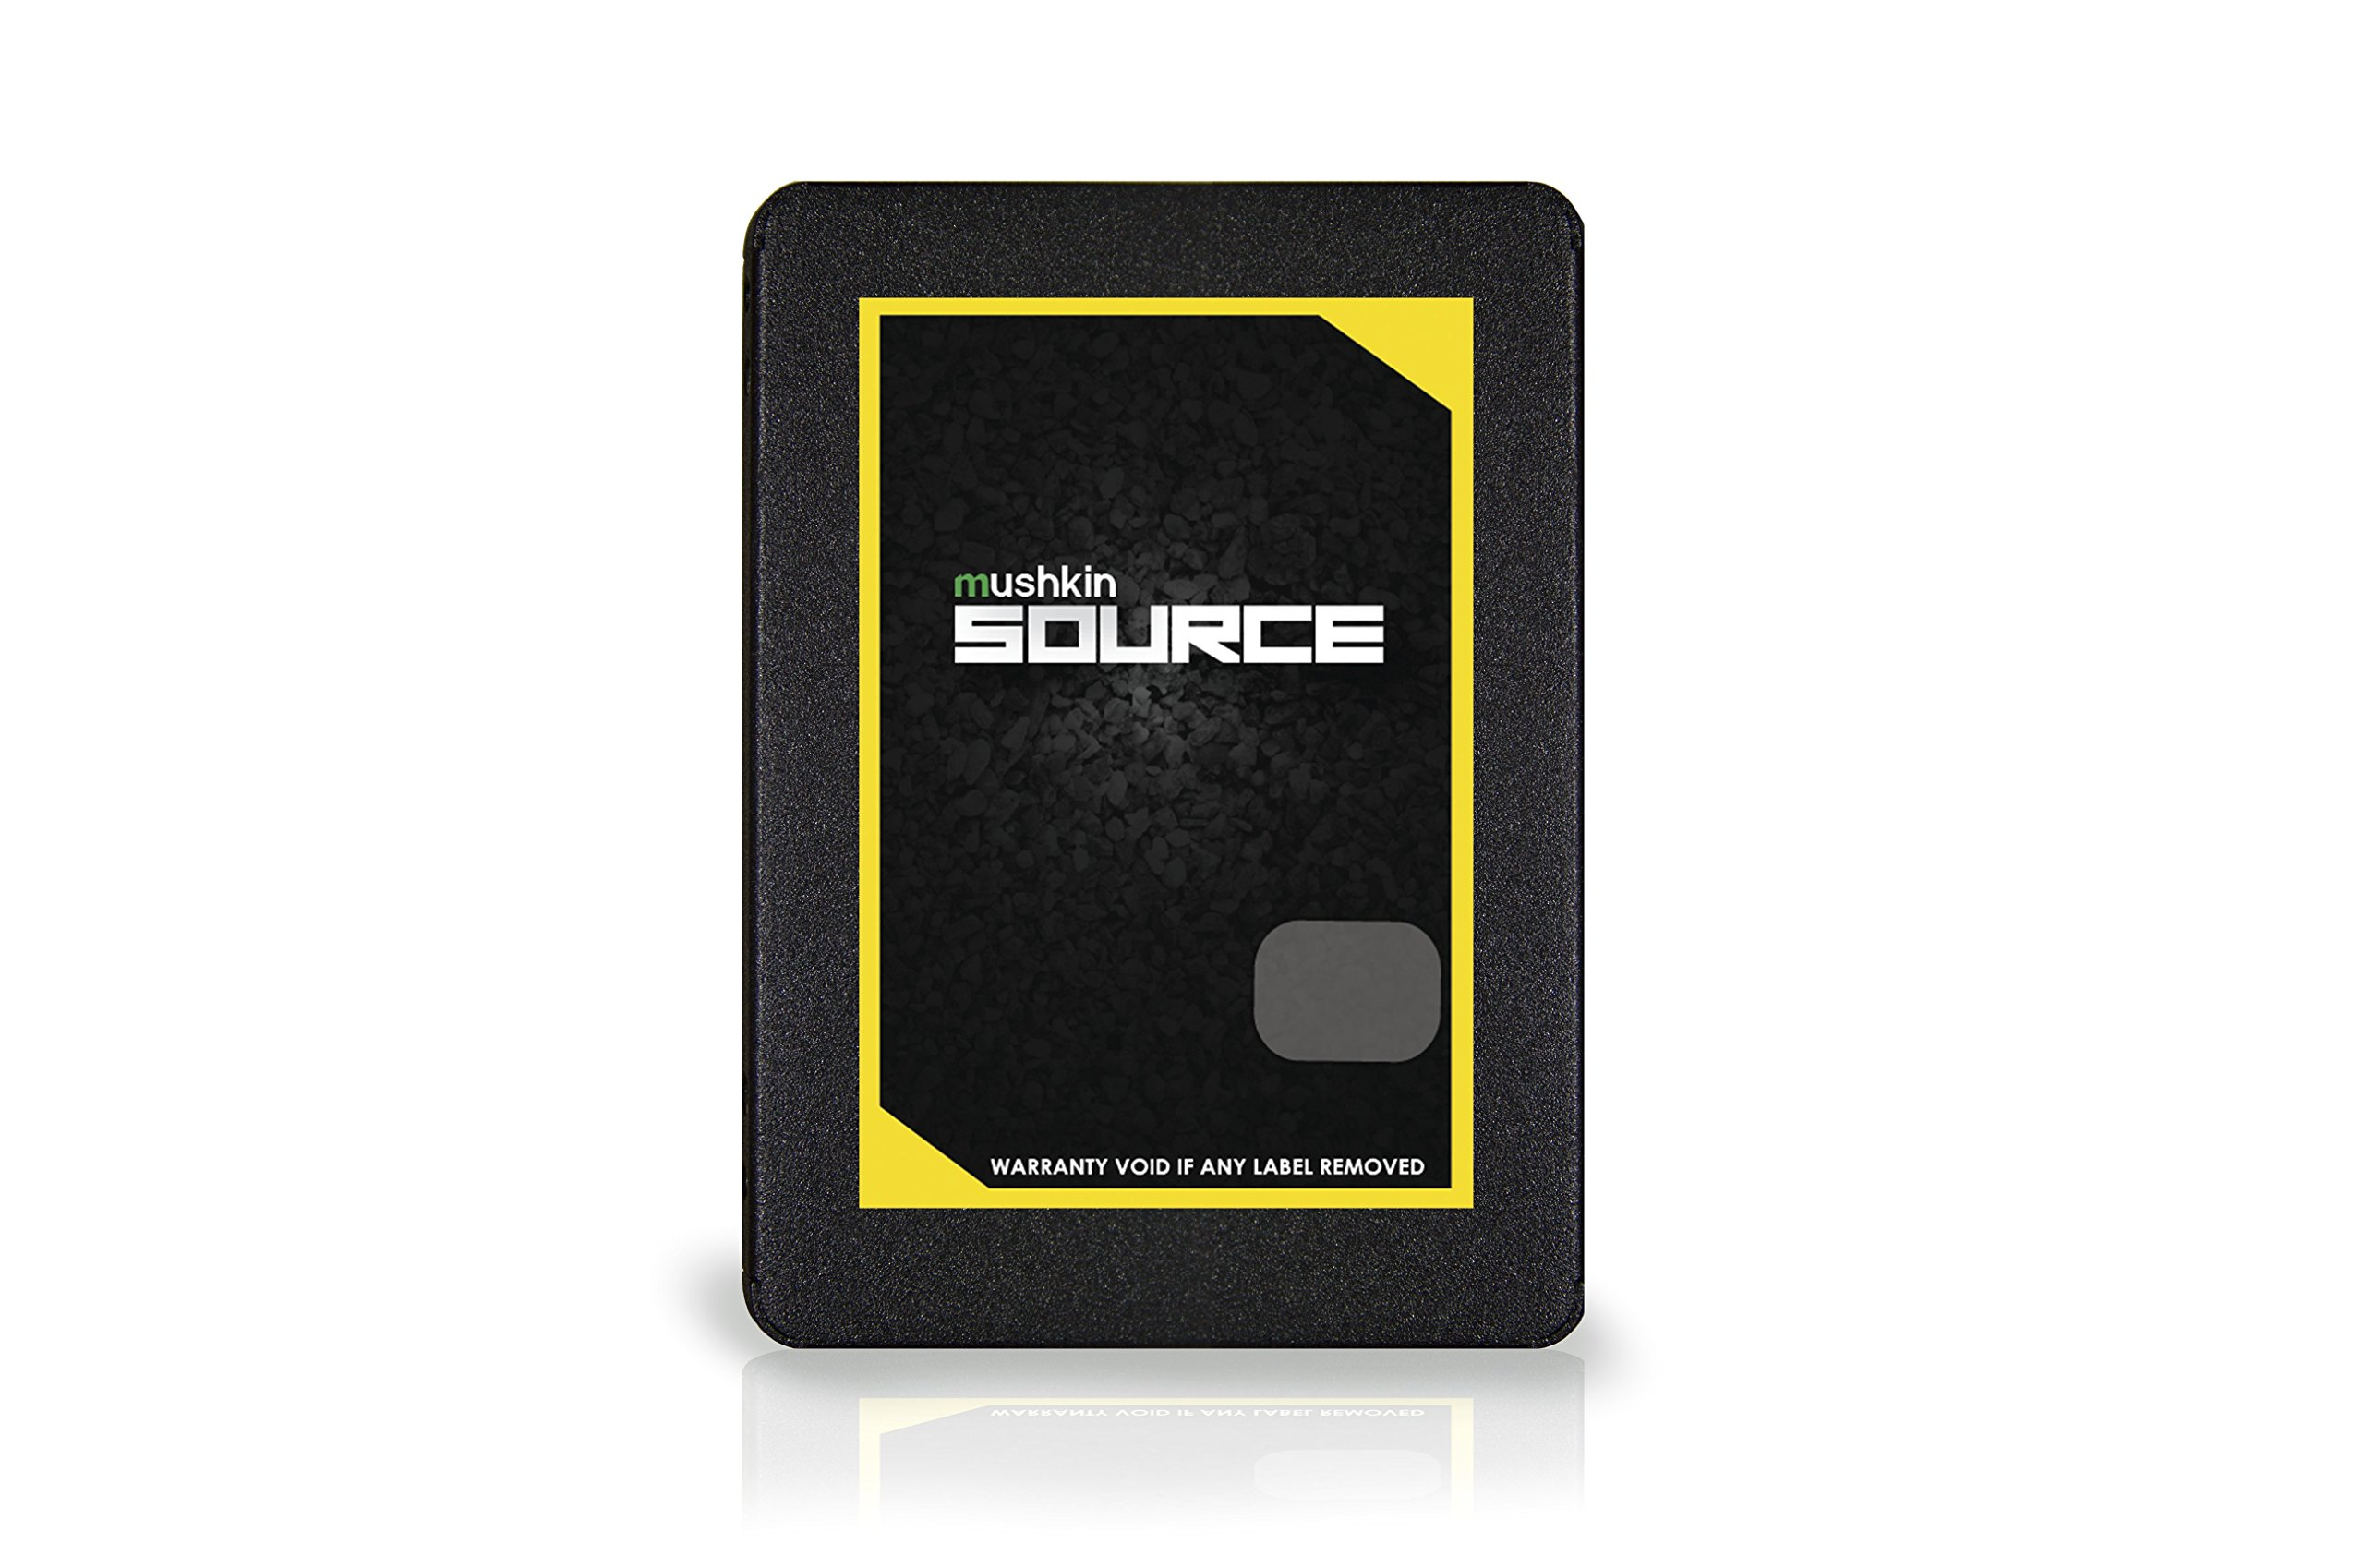 Mushkin SOURCE - 500GB Internal Solid State Drive (SSD) - 2.5 Inch - SATA III - 6Gb/s - 3D Vertical TLC - 7mm – (MKNSSDSR500GB) by Mushkin